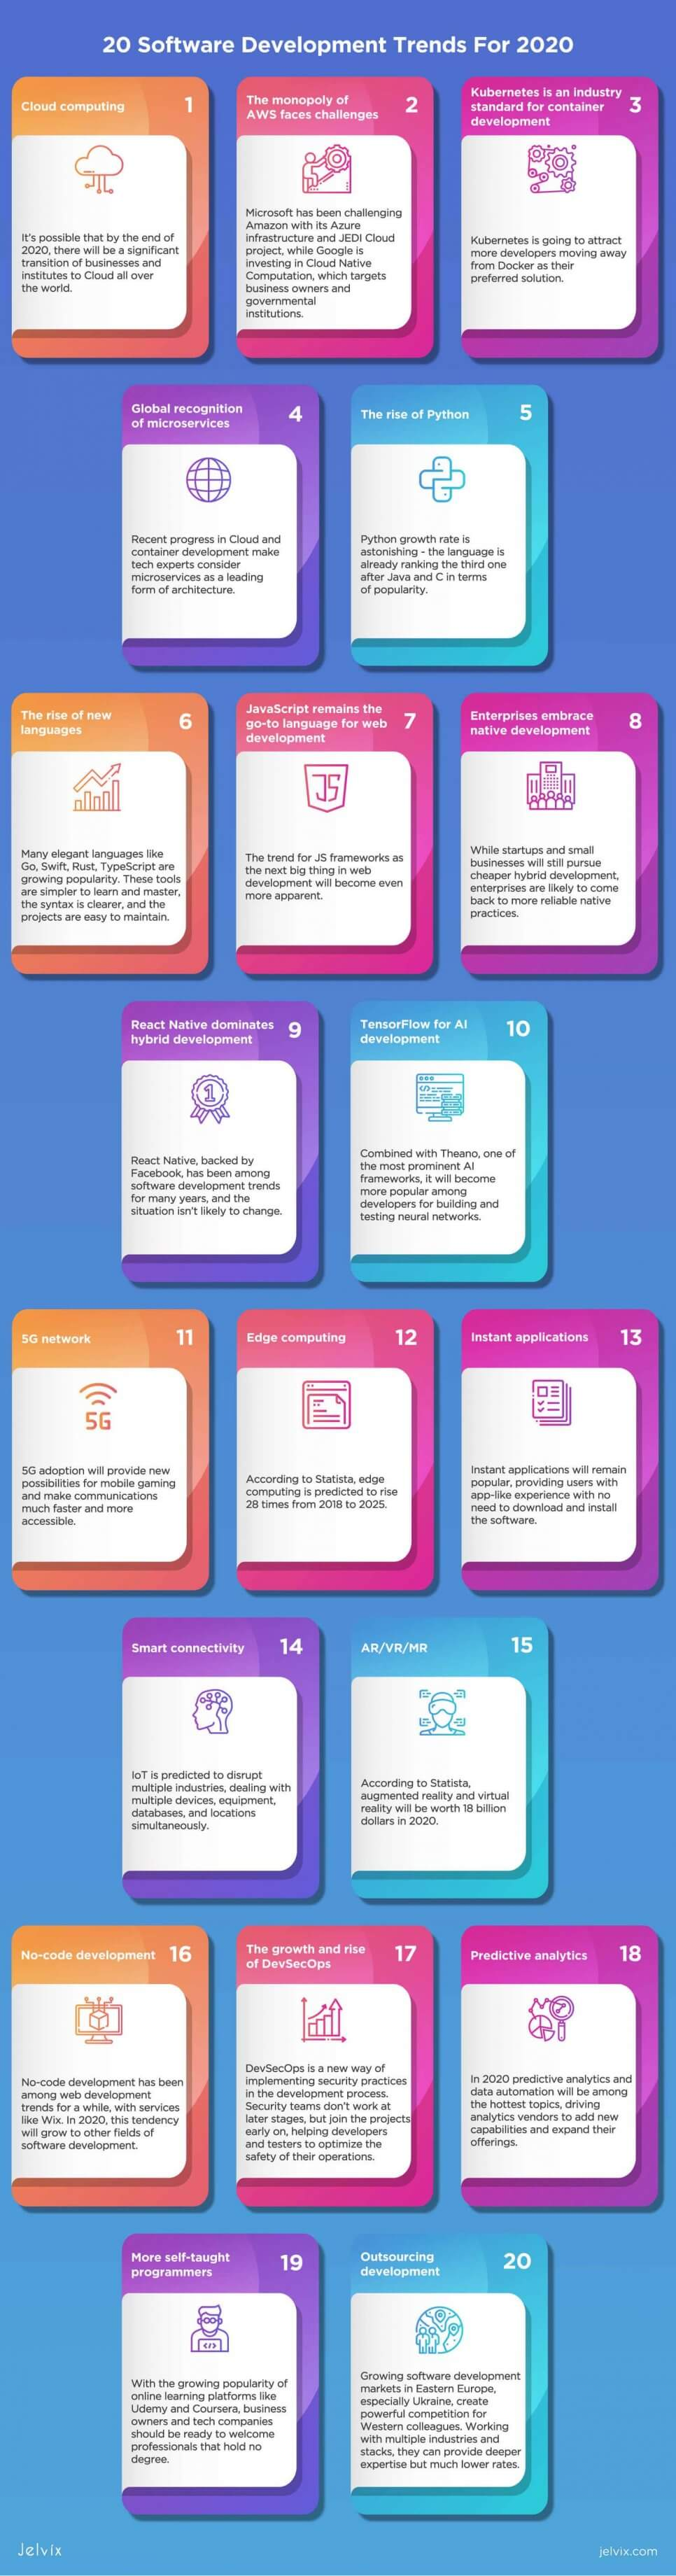 software trends 2020 infographic